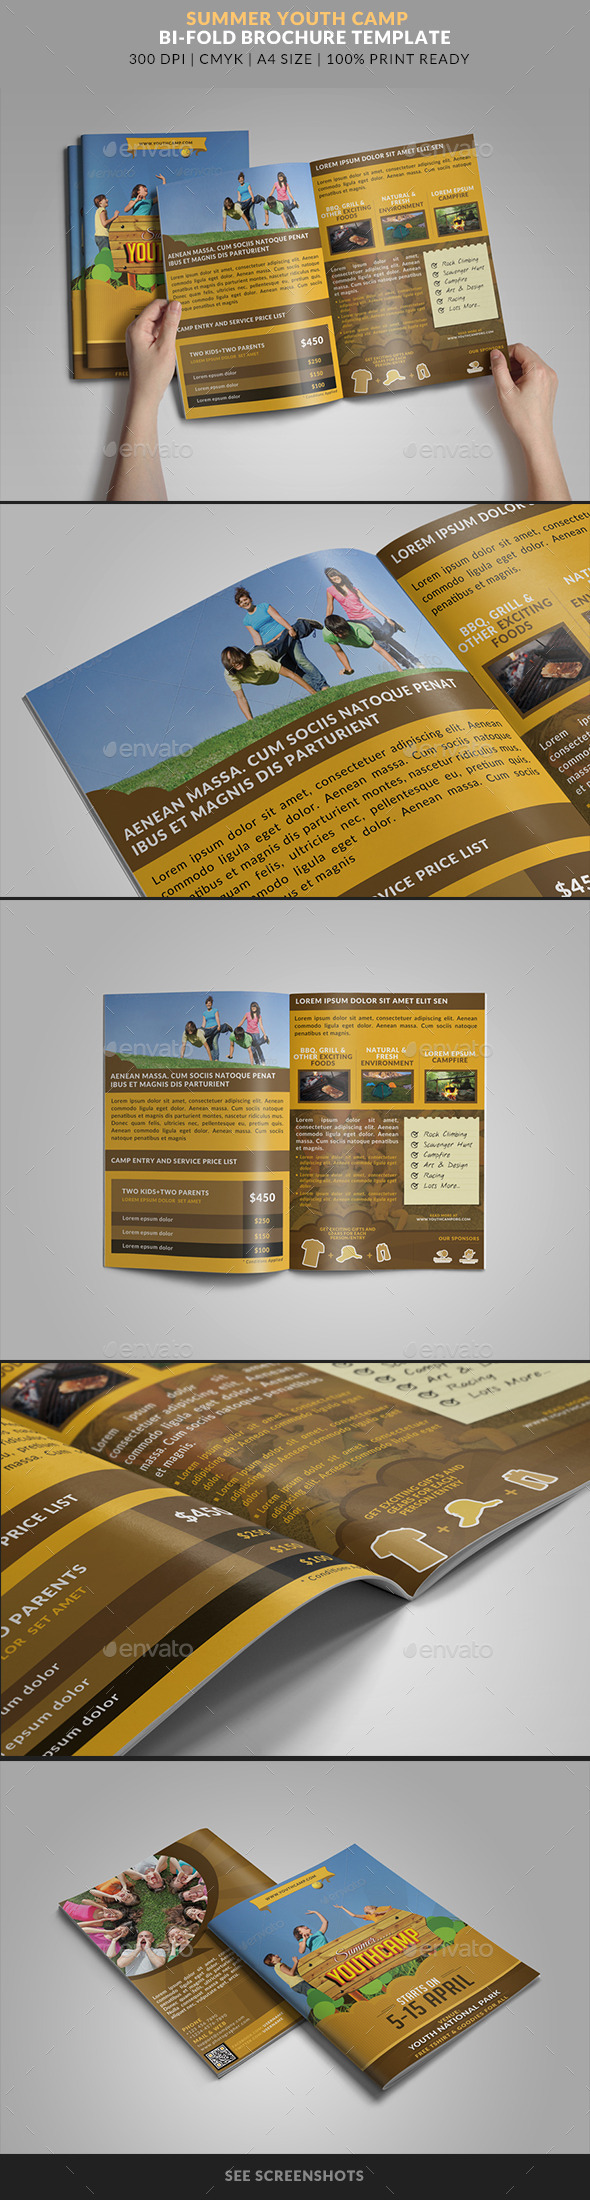 GraphicRiver Summer Youth Camp bifold brochure 2 11227203